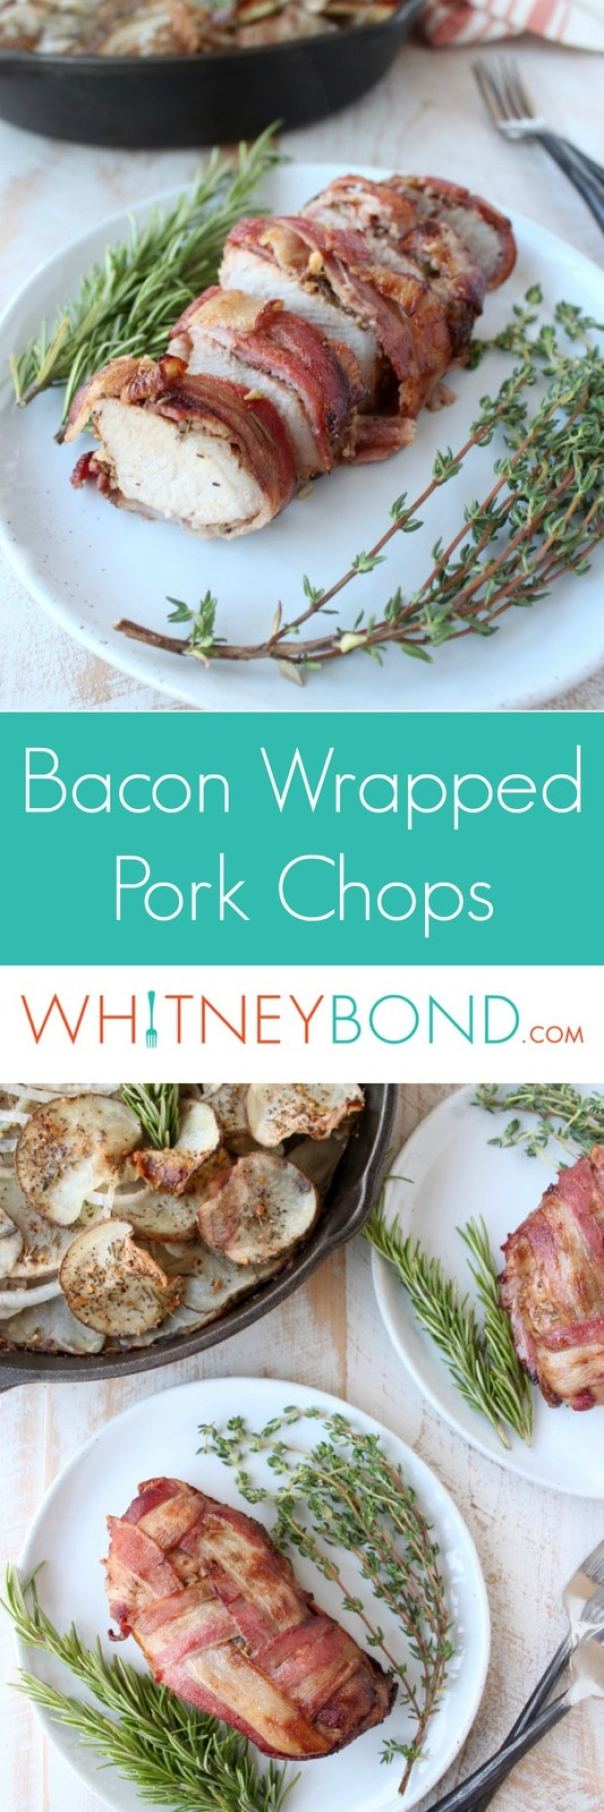 Bacon Wrapped Pork Chops Recipe